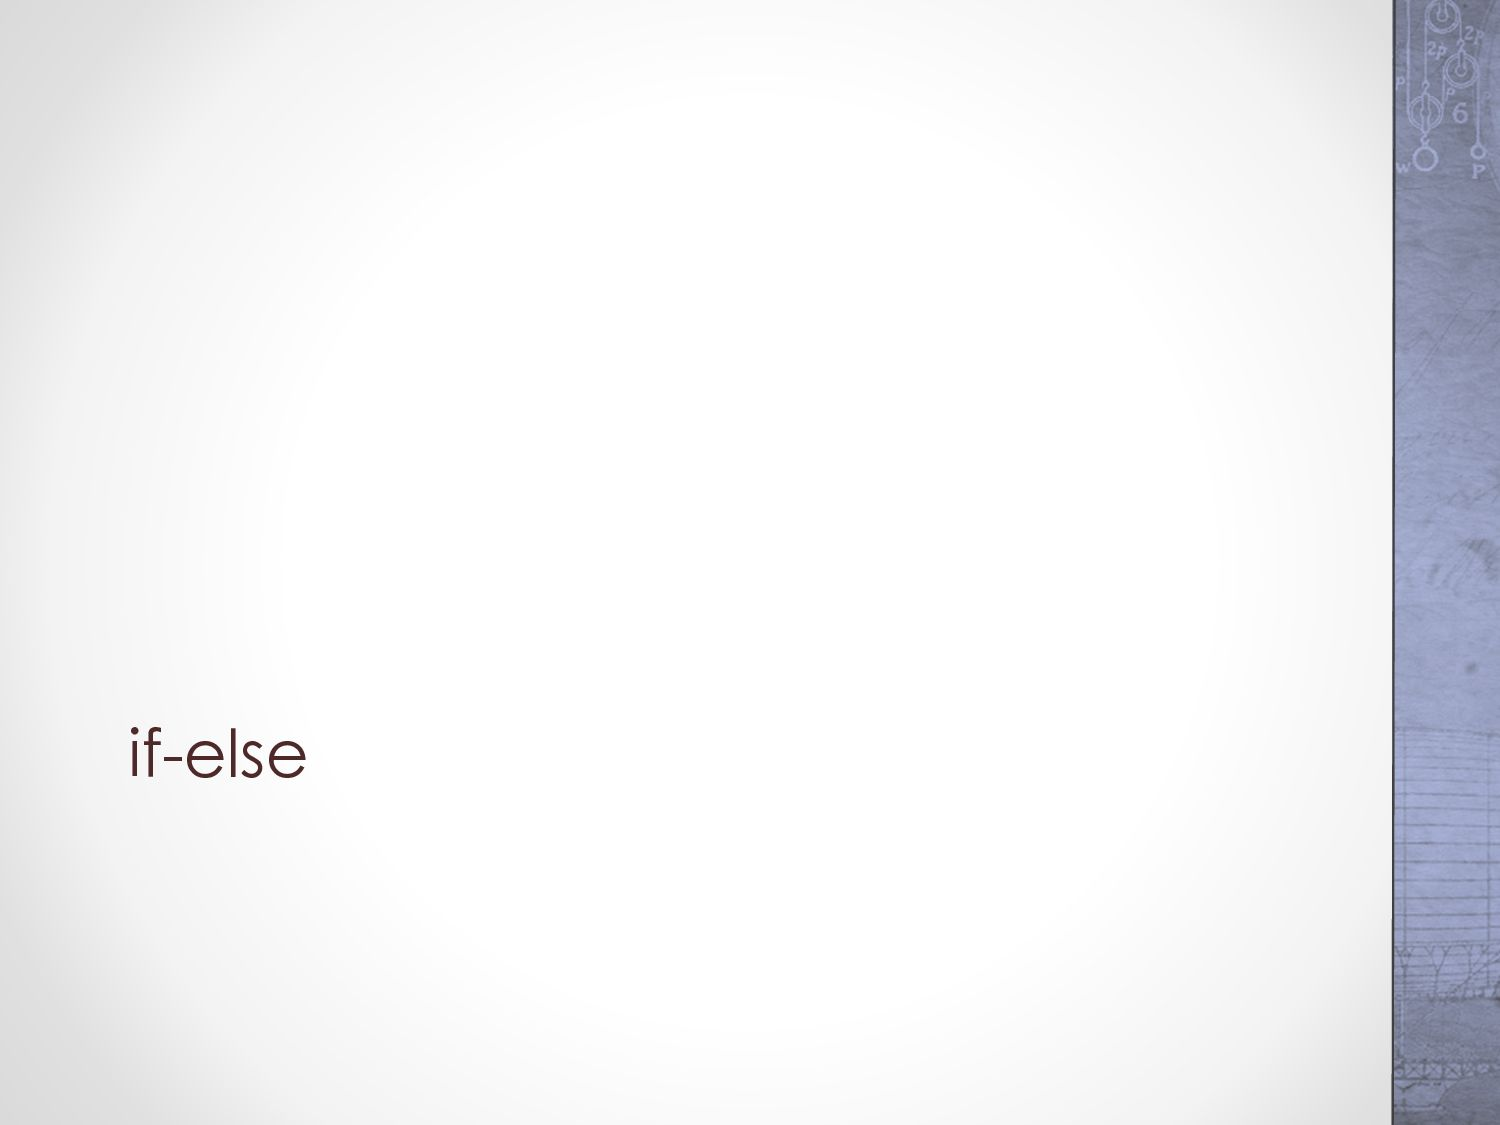 For the Midterm Exam